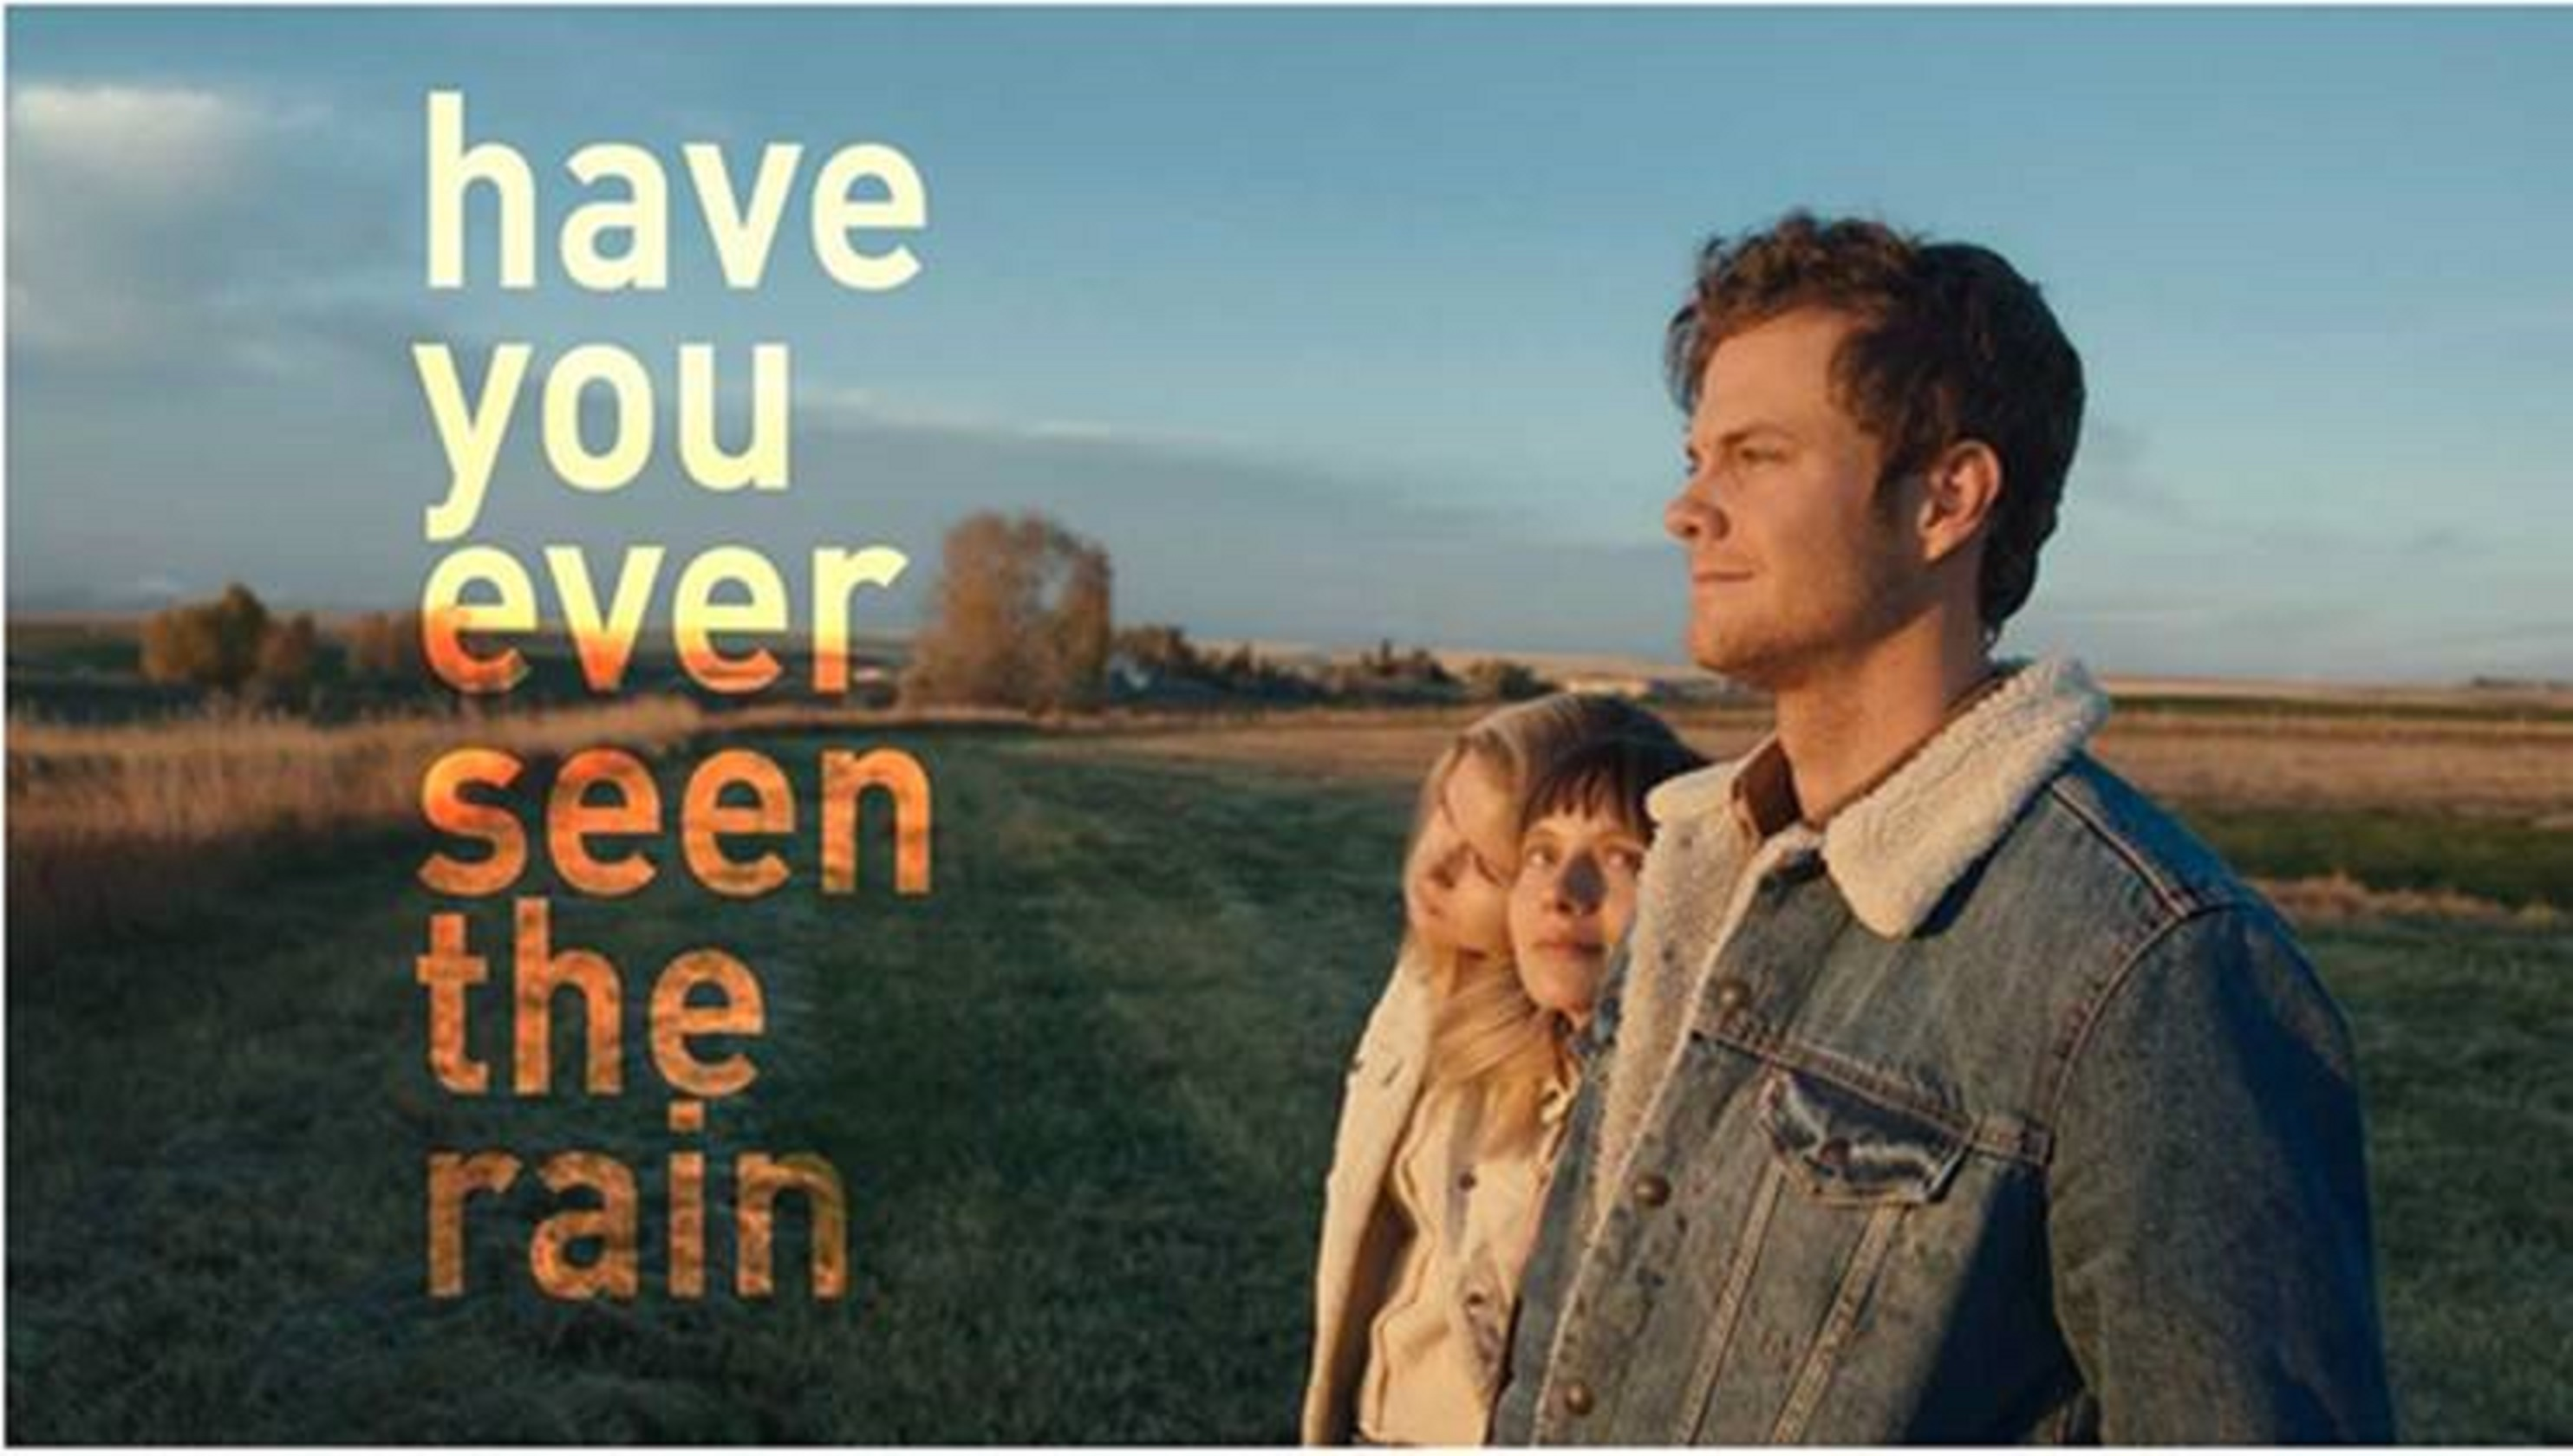 """HAVE YOU EVER SEEN THE RAIN"" SHORT FORM PROJECT UNVEILED COMMEMORATING BAND'S 50 YEAR ANNIVERSARY"